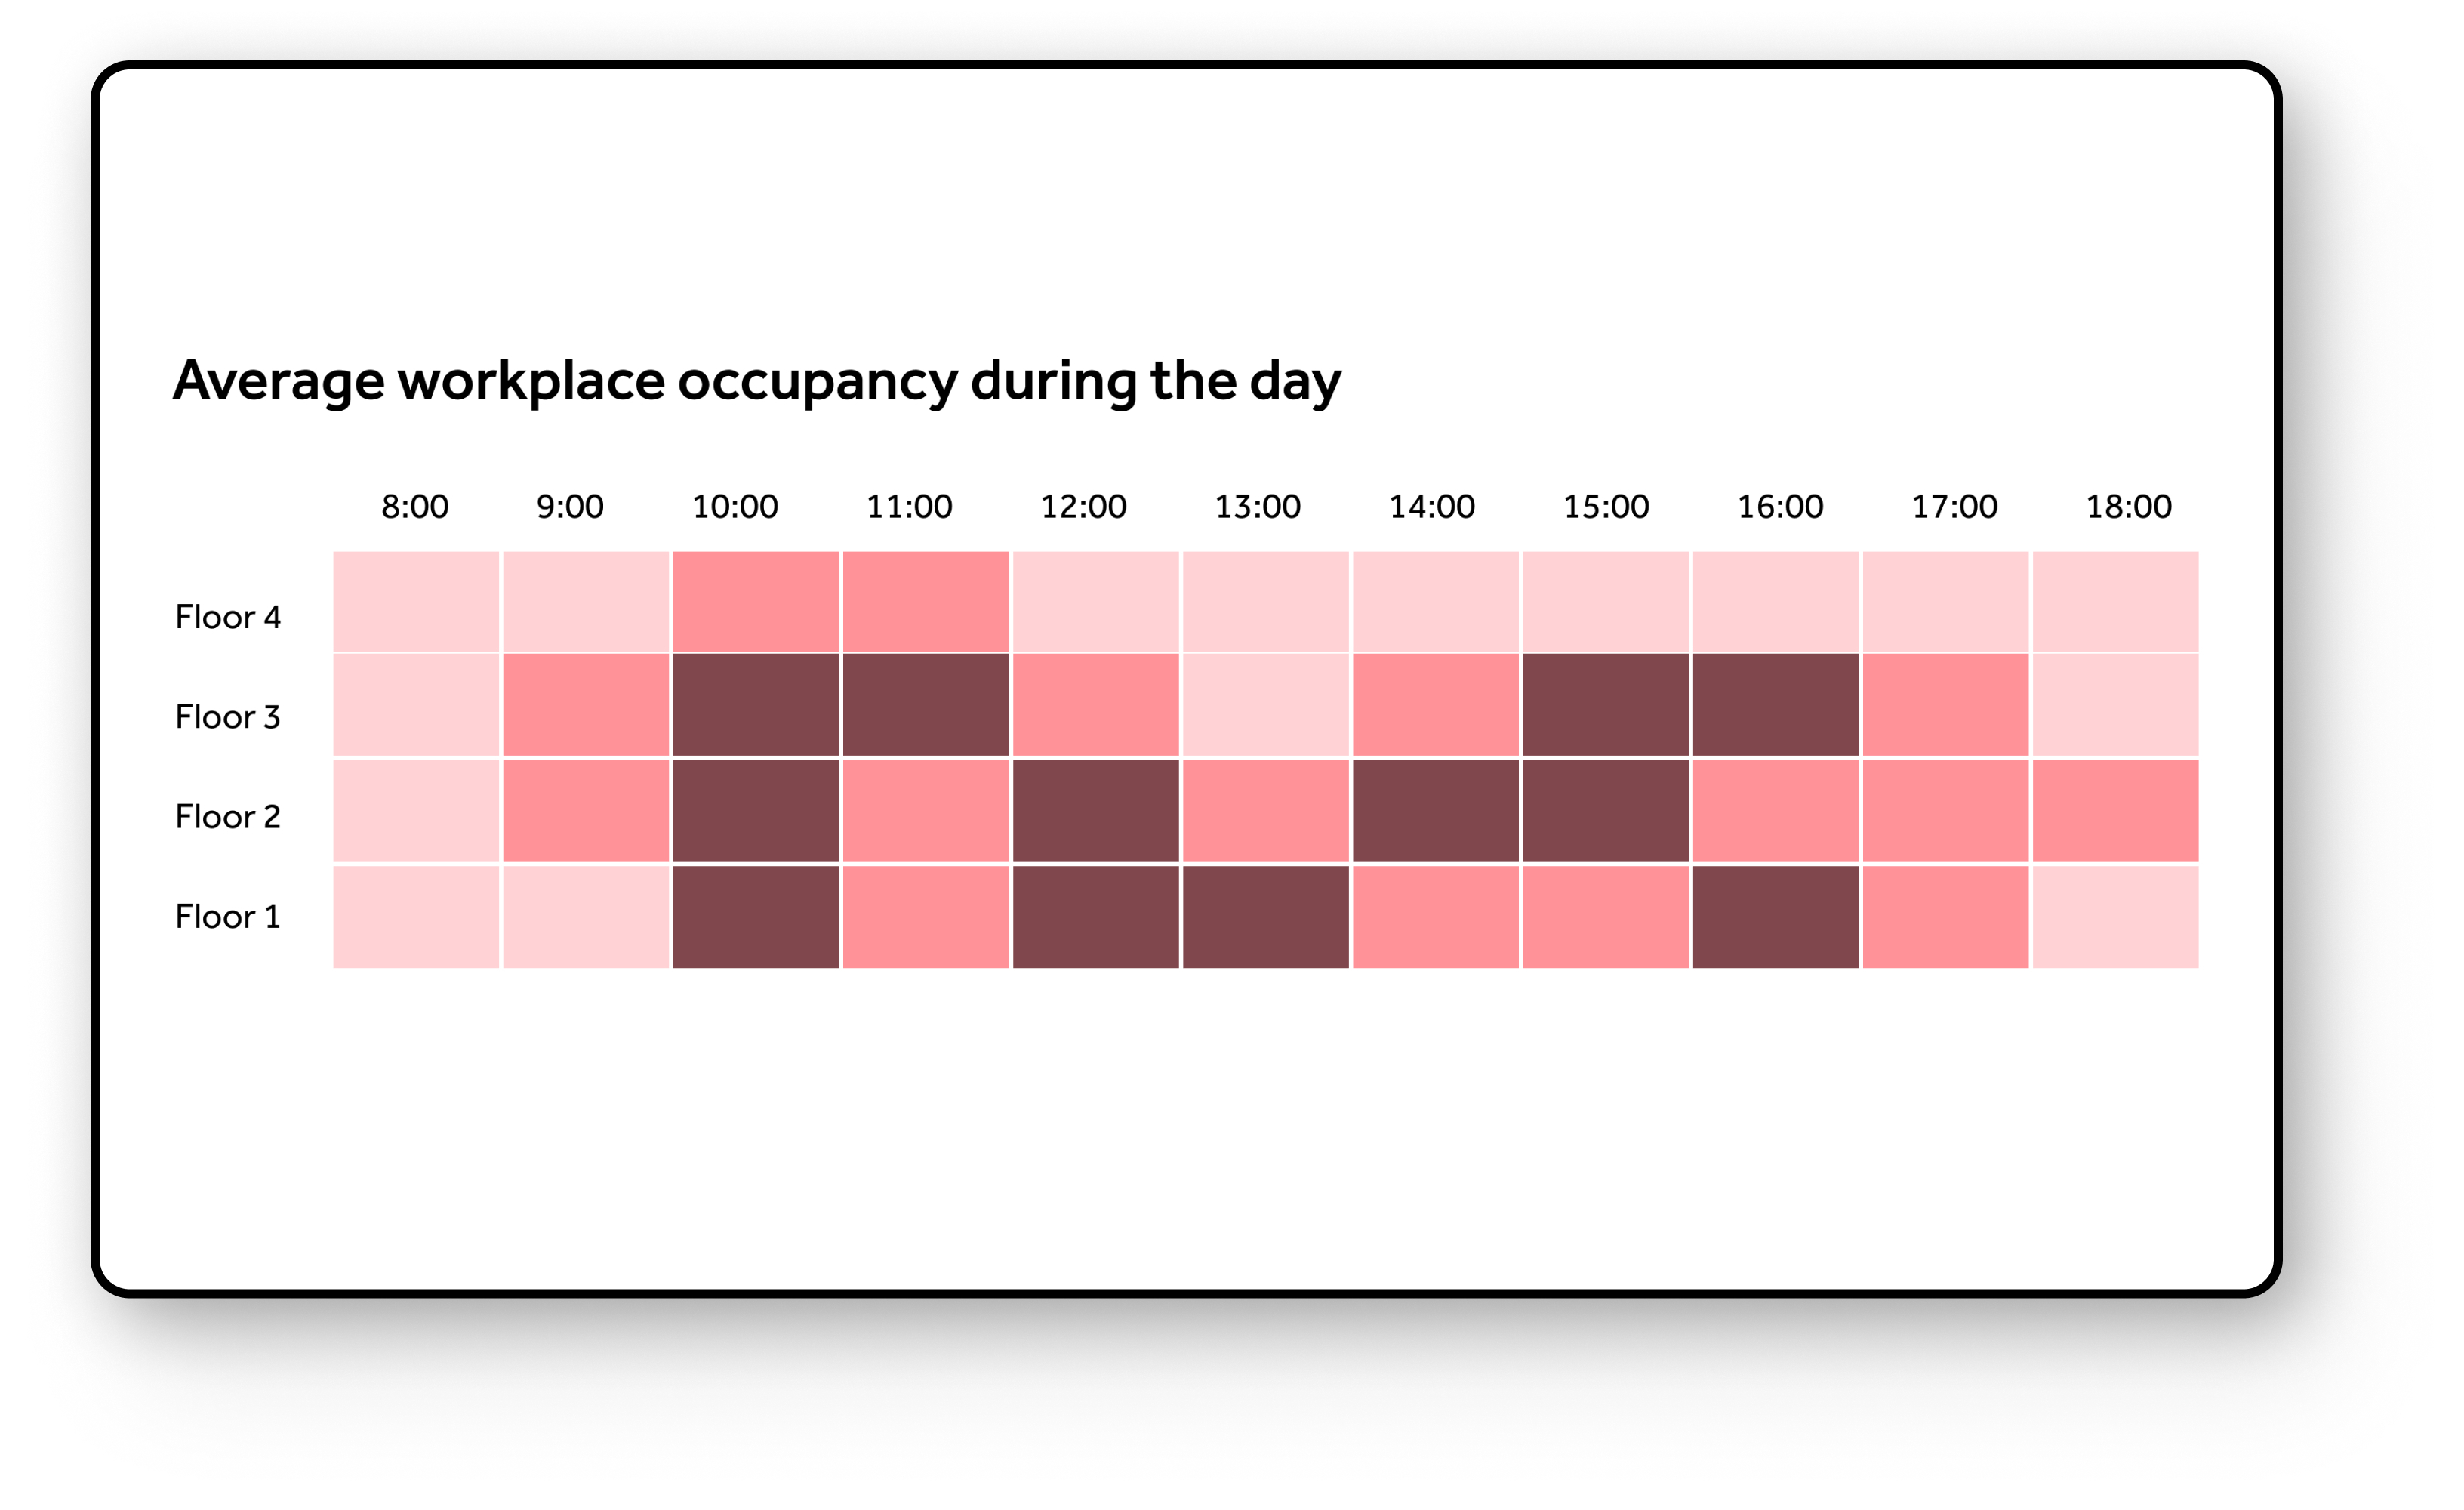 Average workplace occupancy